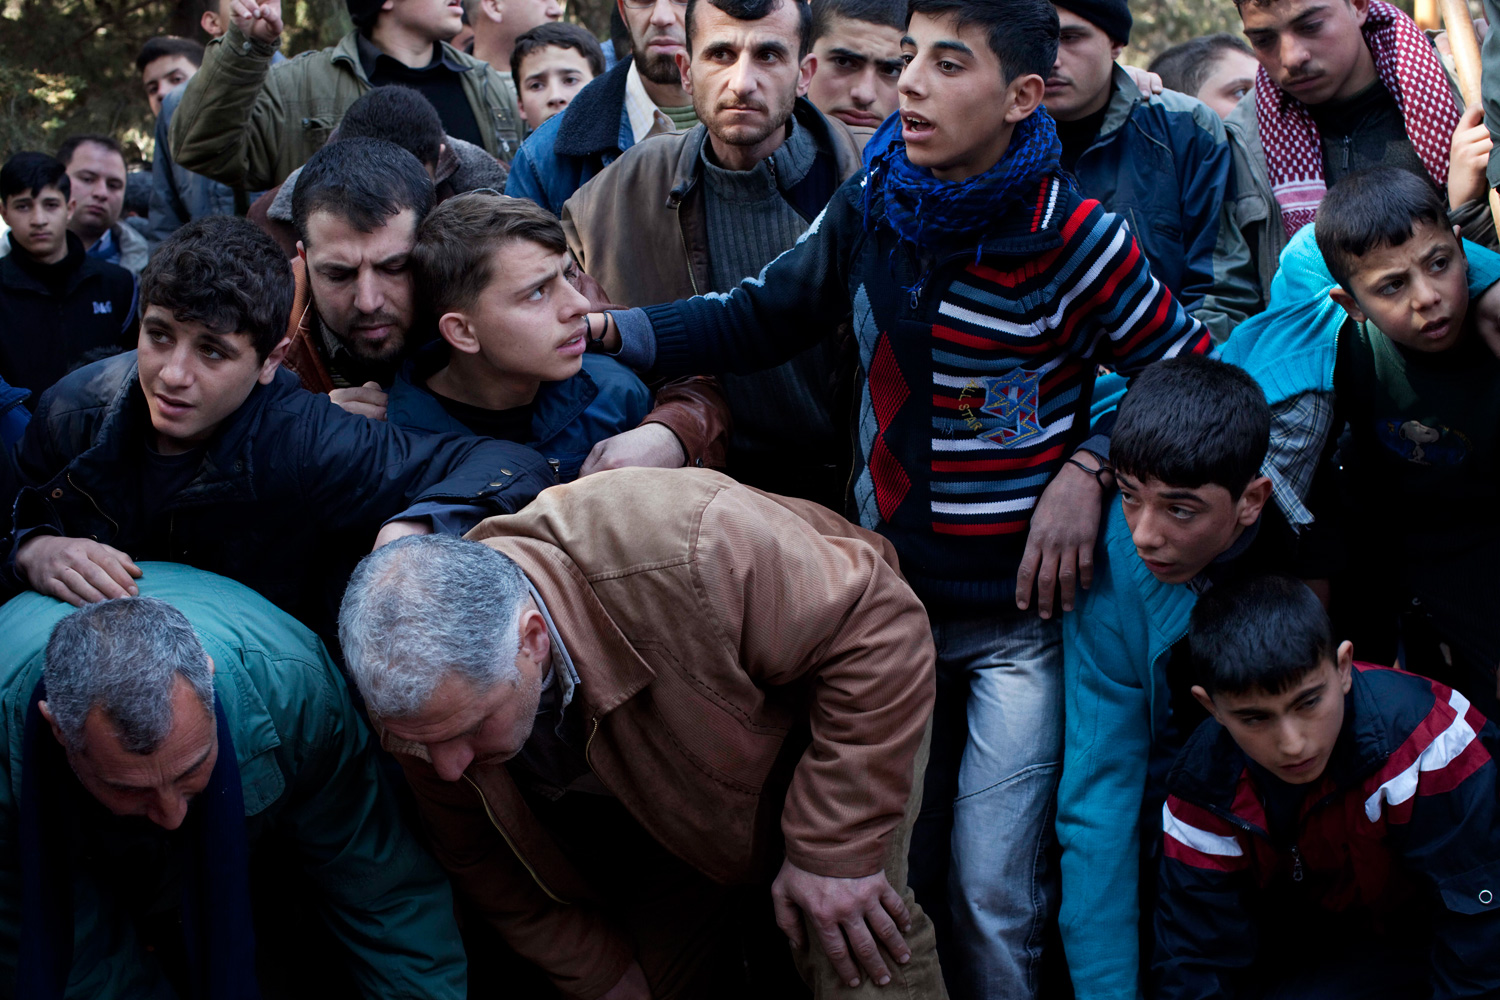 March 8, 2012. Mourners attend the funeral for Abdulaziz Abu Ahmed Khrer, killed by a Syrian Army sniper, in Idlib, north Syria.